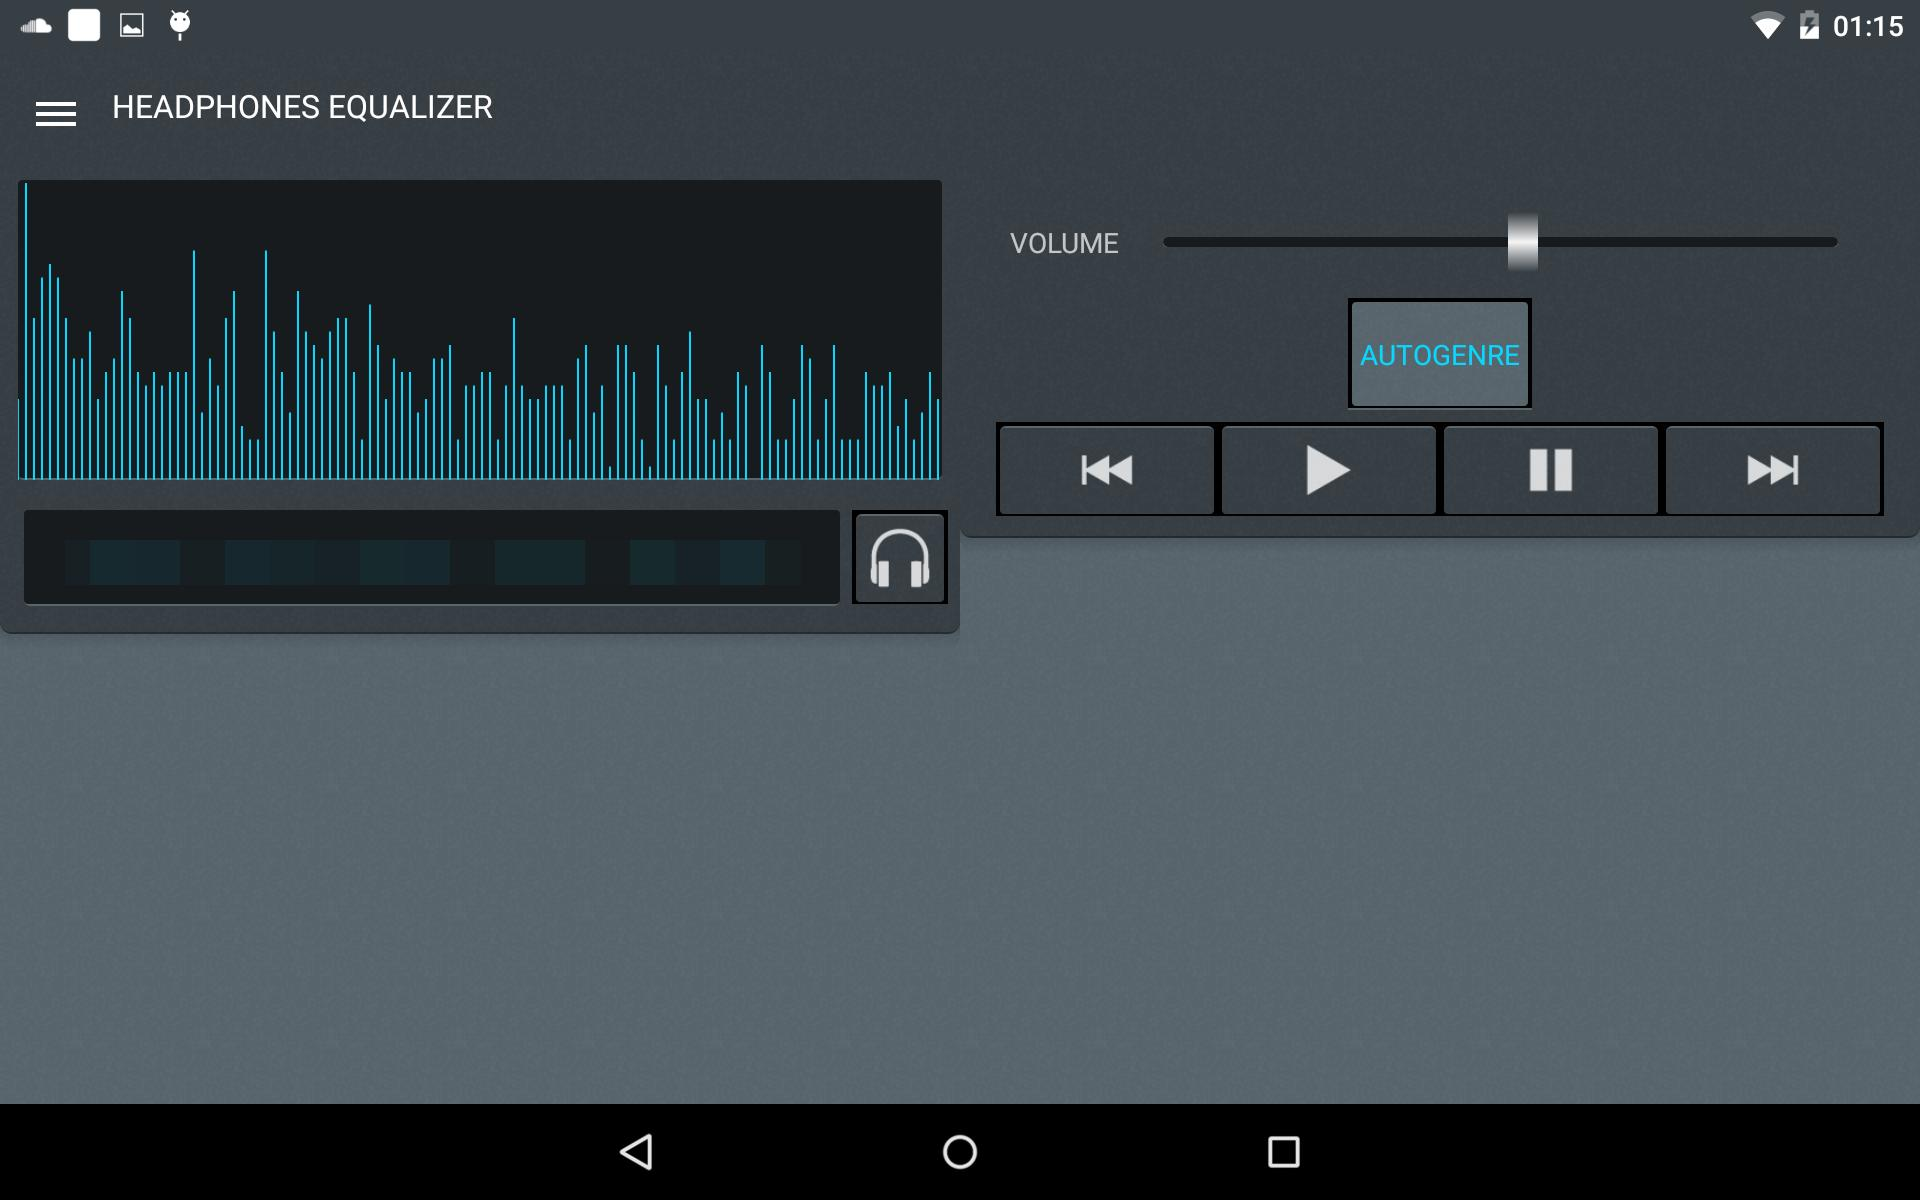 Headphones Equalizer for Android - APK Download